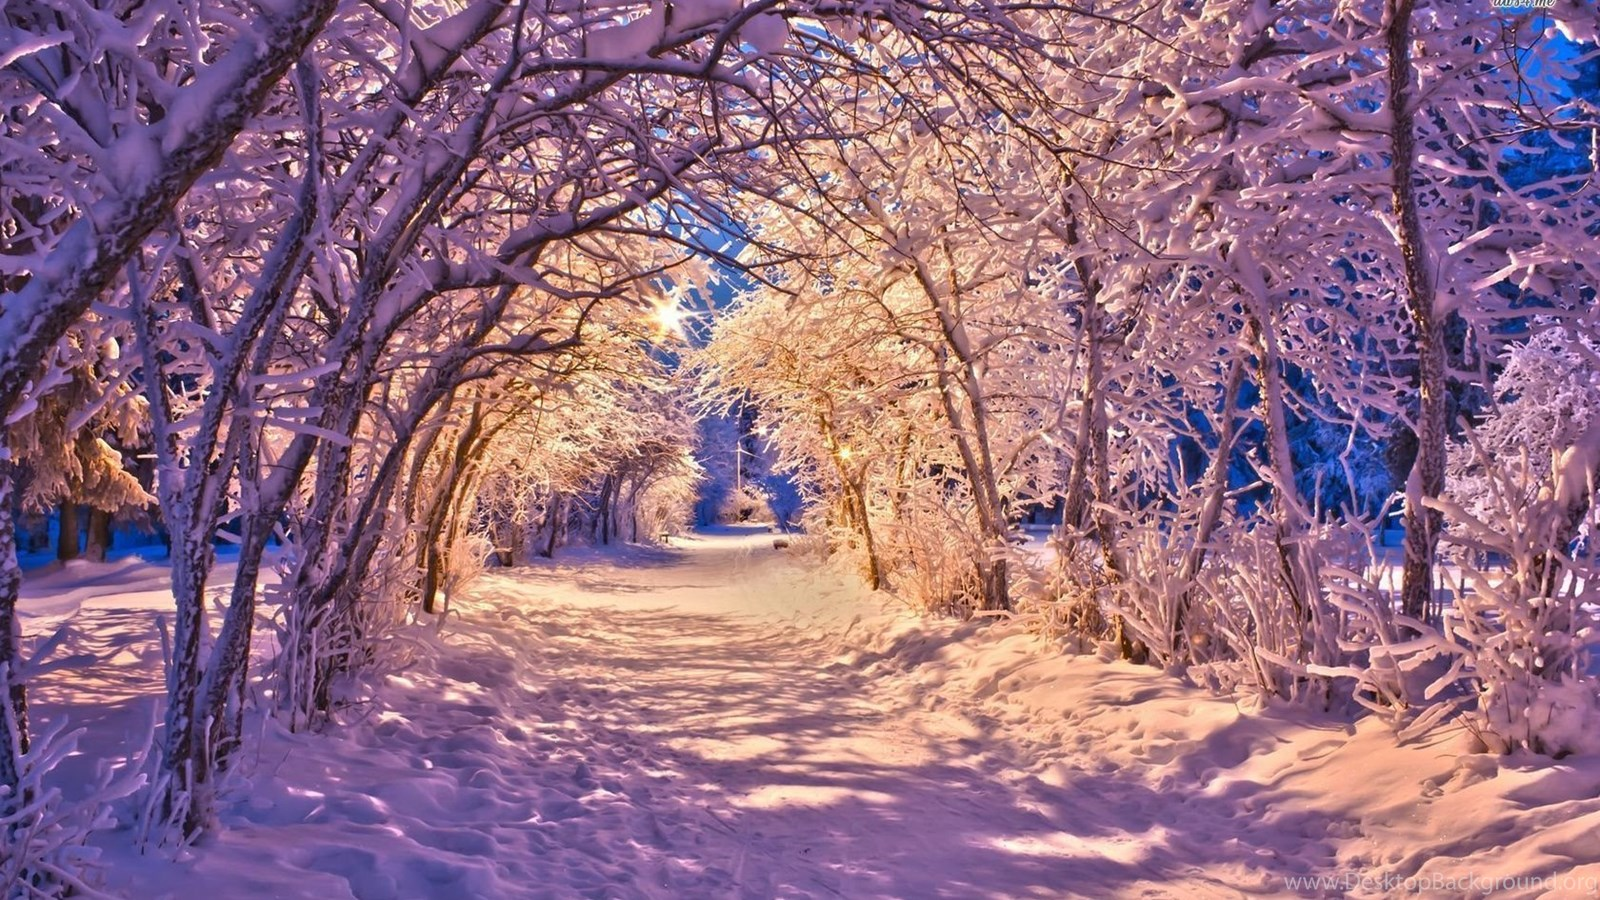 Болталка -5 - Страница 2 35505_snowy-alley-wallpapers-nature-wallpapers_1680x1050_h